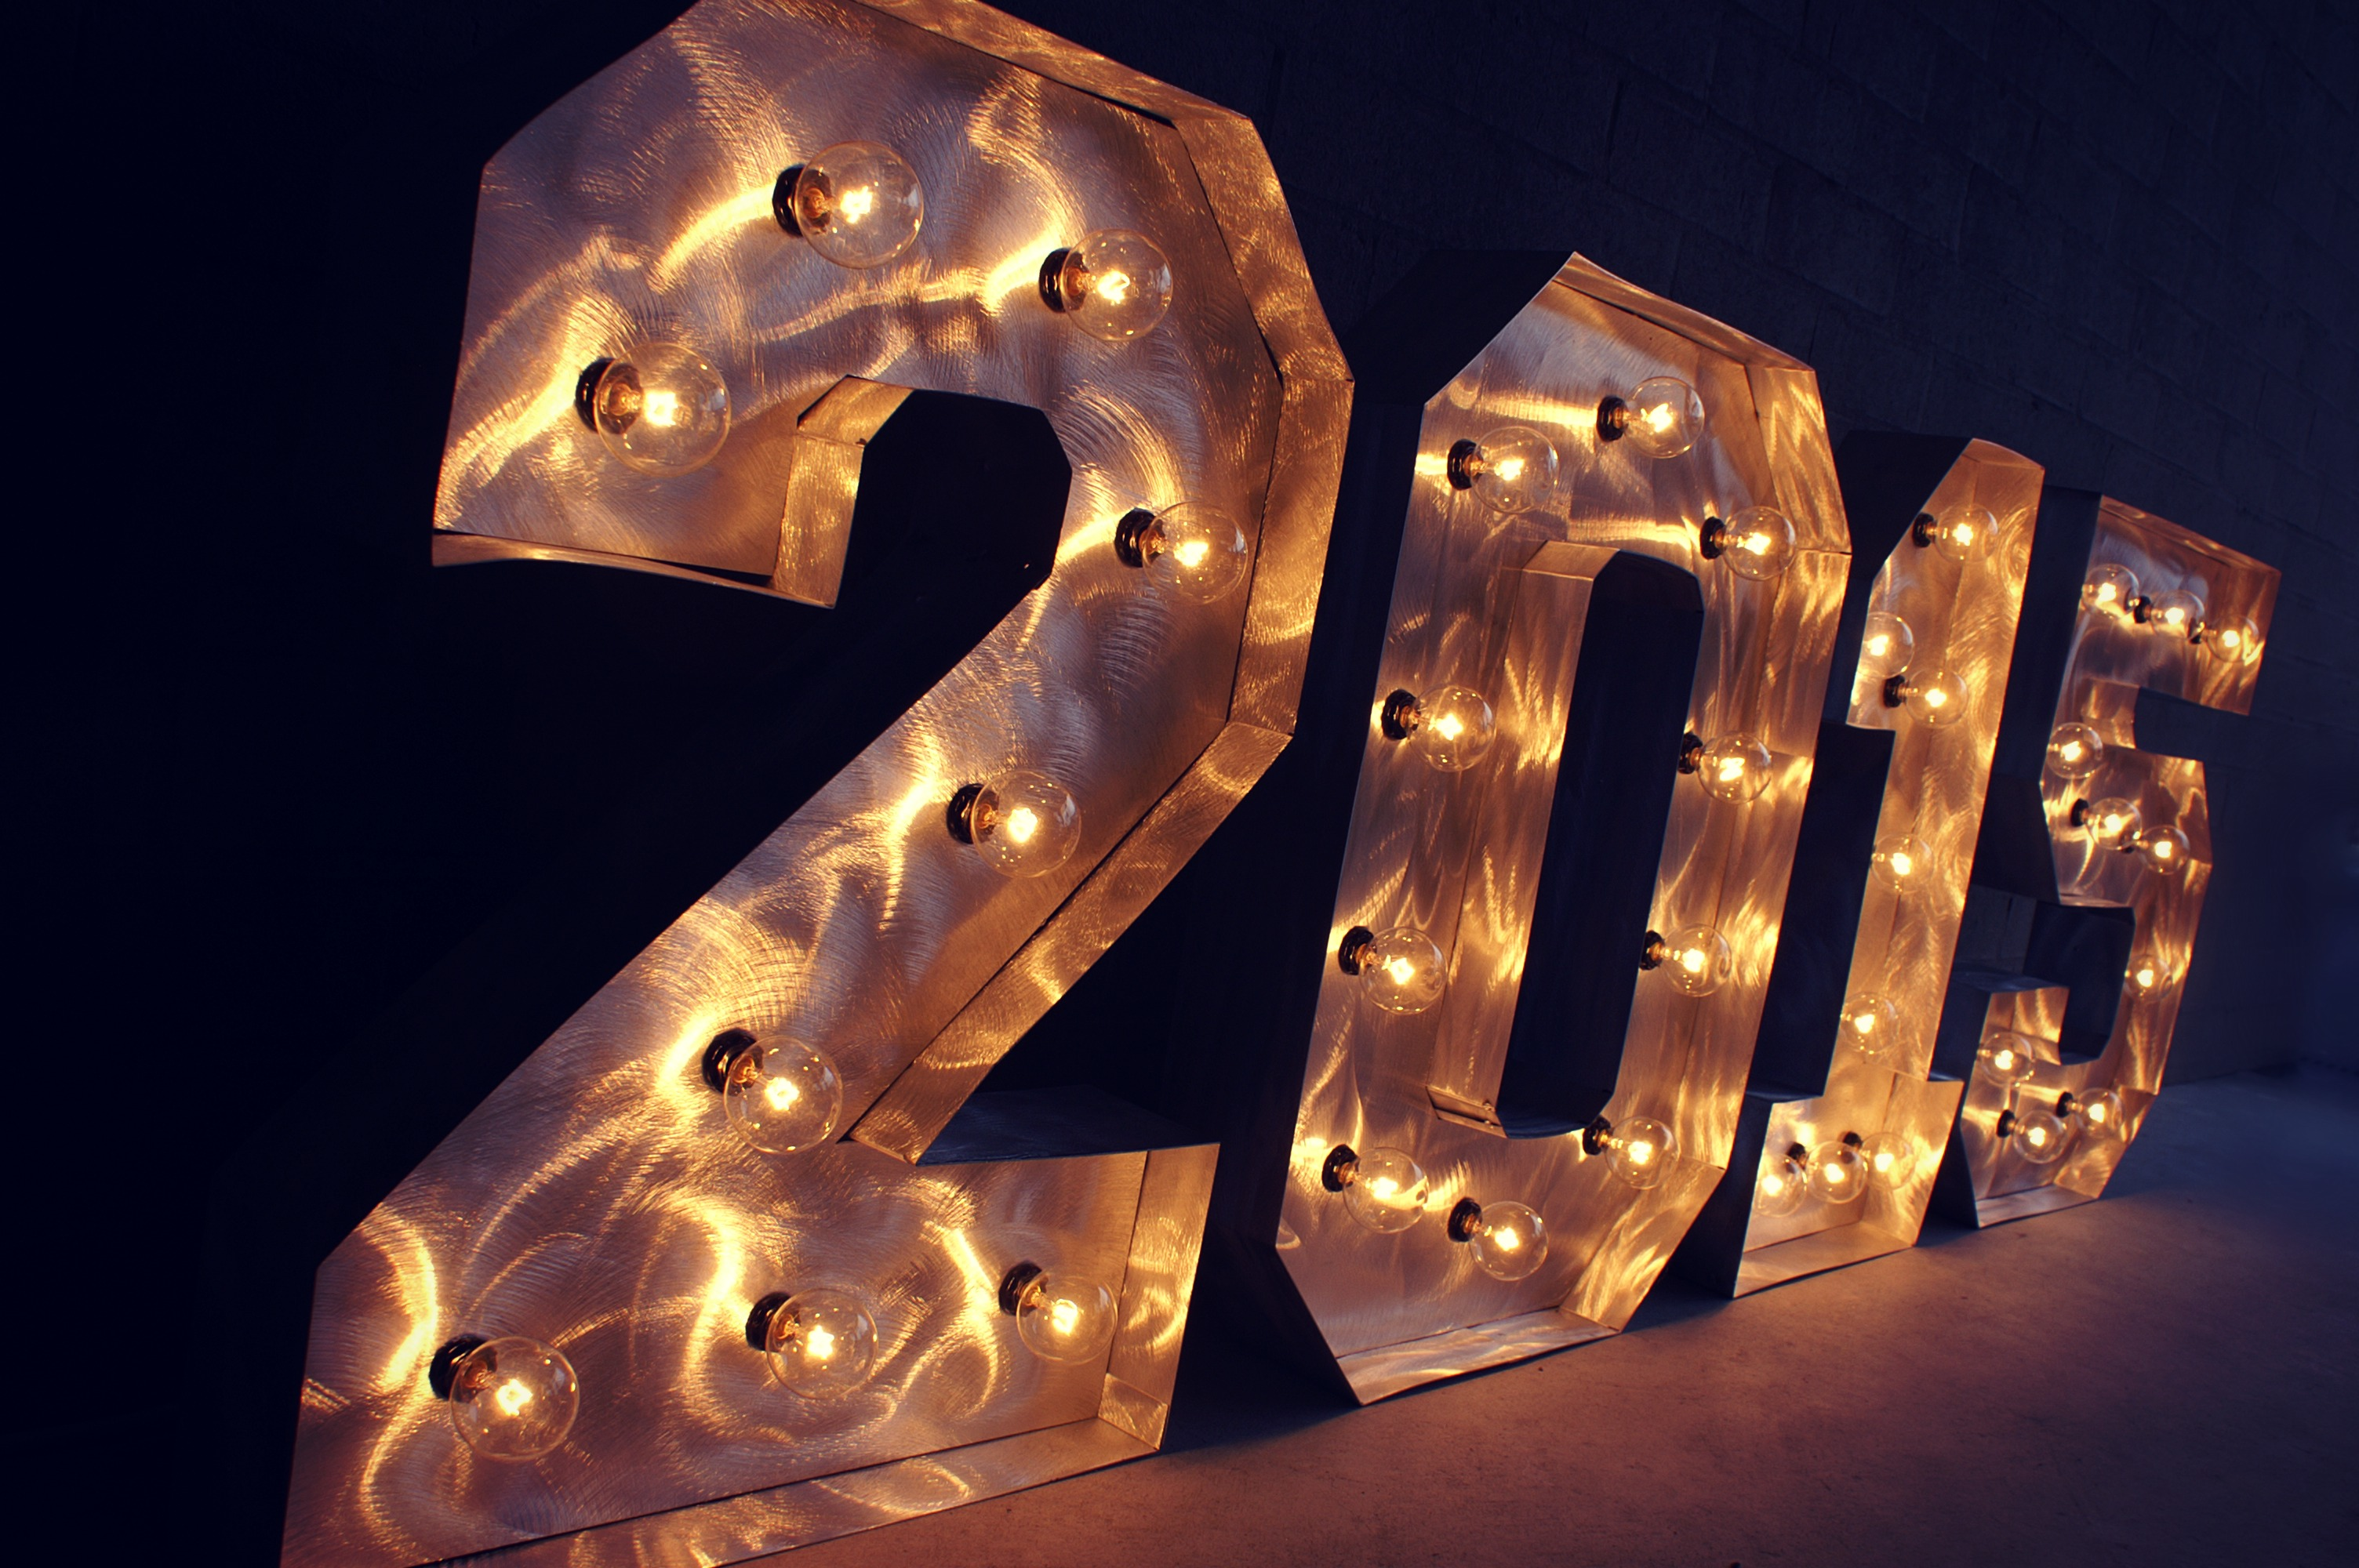 NEW YEAR'S EVE HOME PARTY DECORATING IDEAS NEW YEAR'S EVE HOME PARTY DECORATING IDEAS 2015 angle